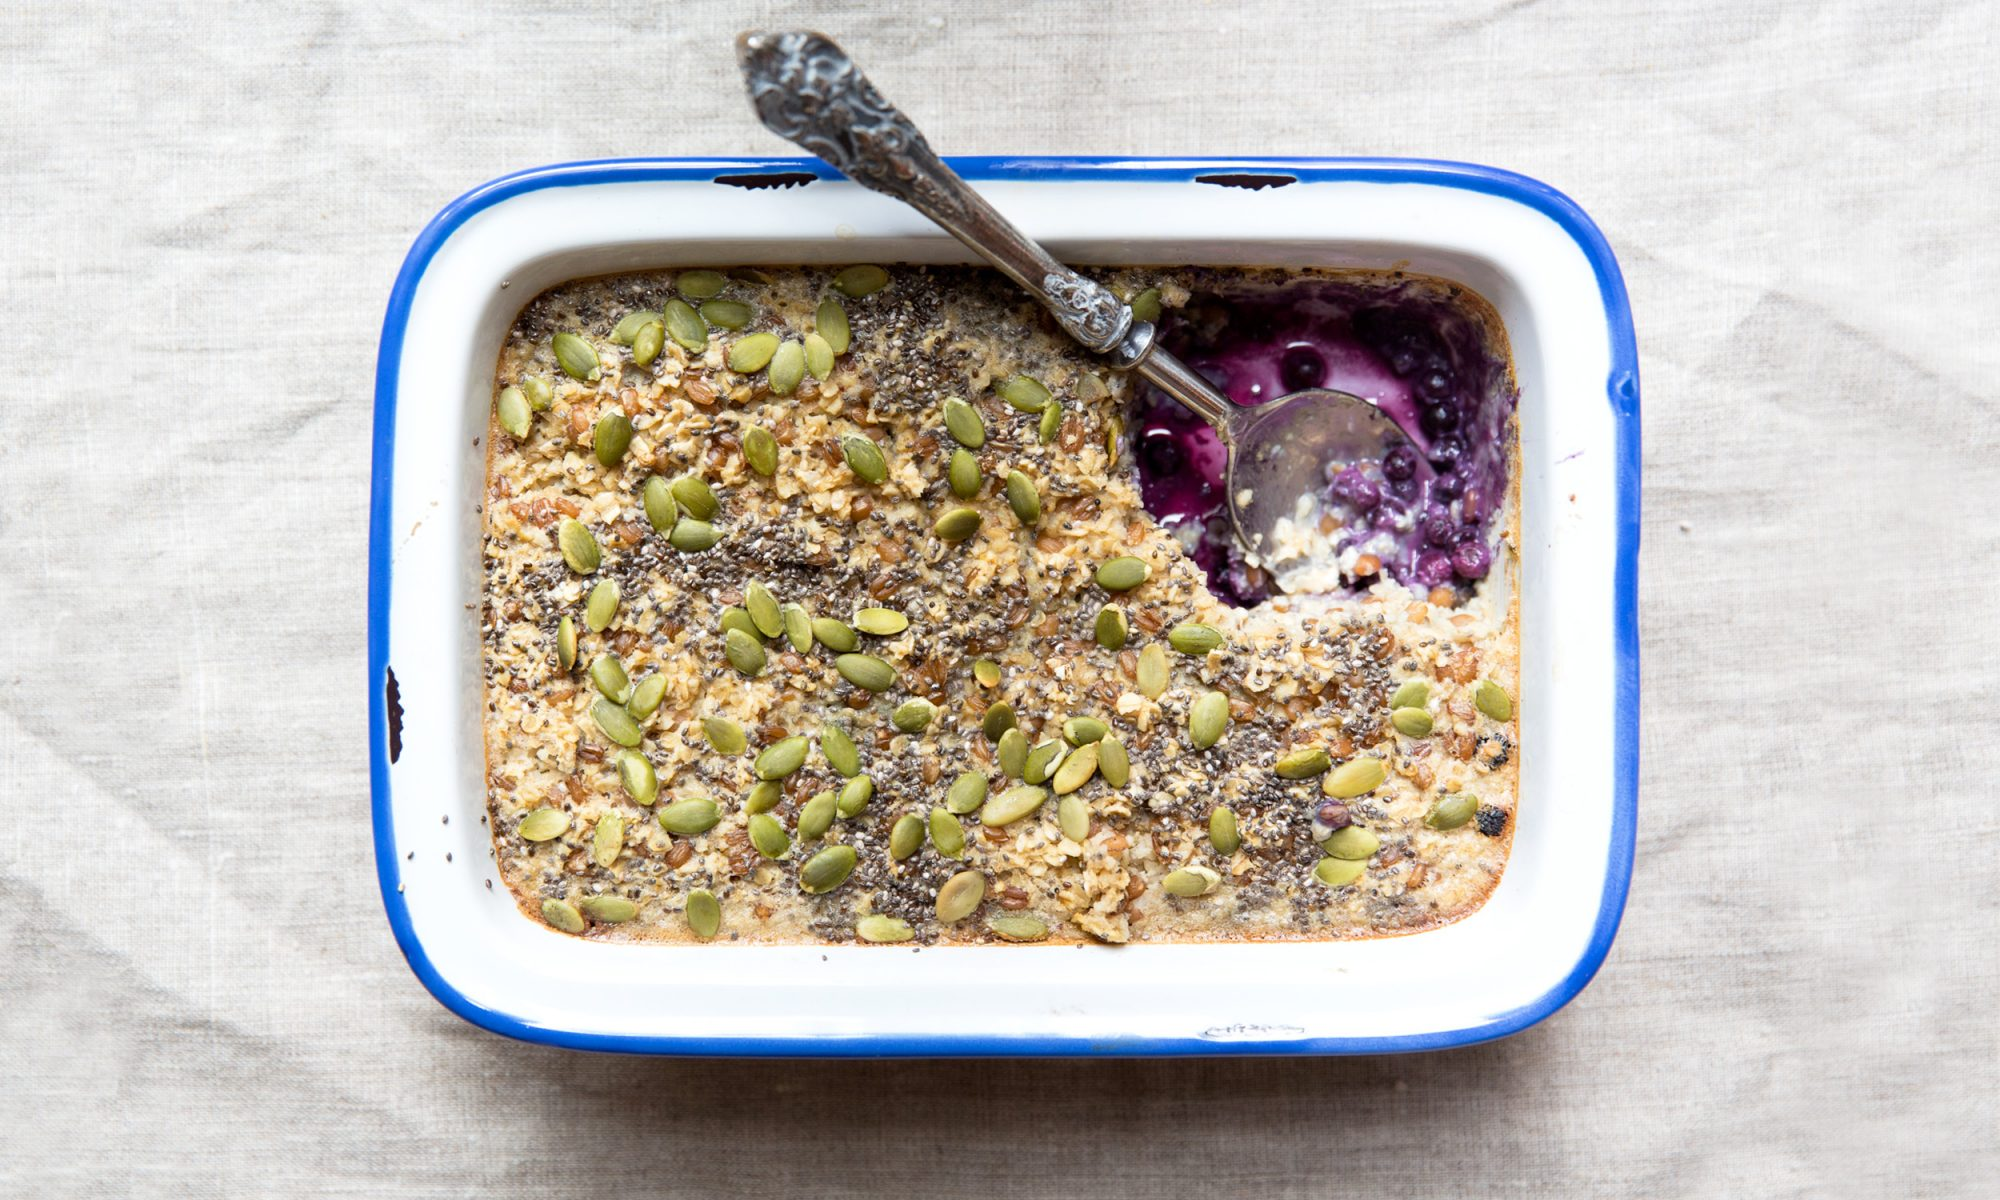 7 Baked Oatmeal Recipes That Make Meal Prep a Breeze